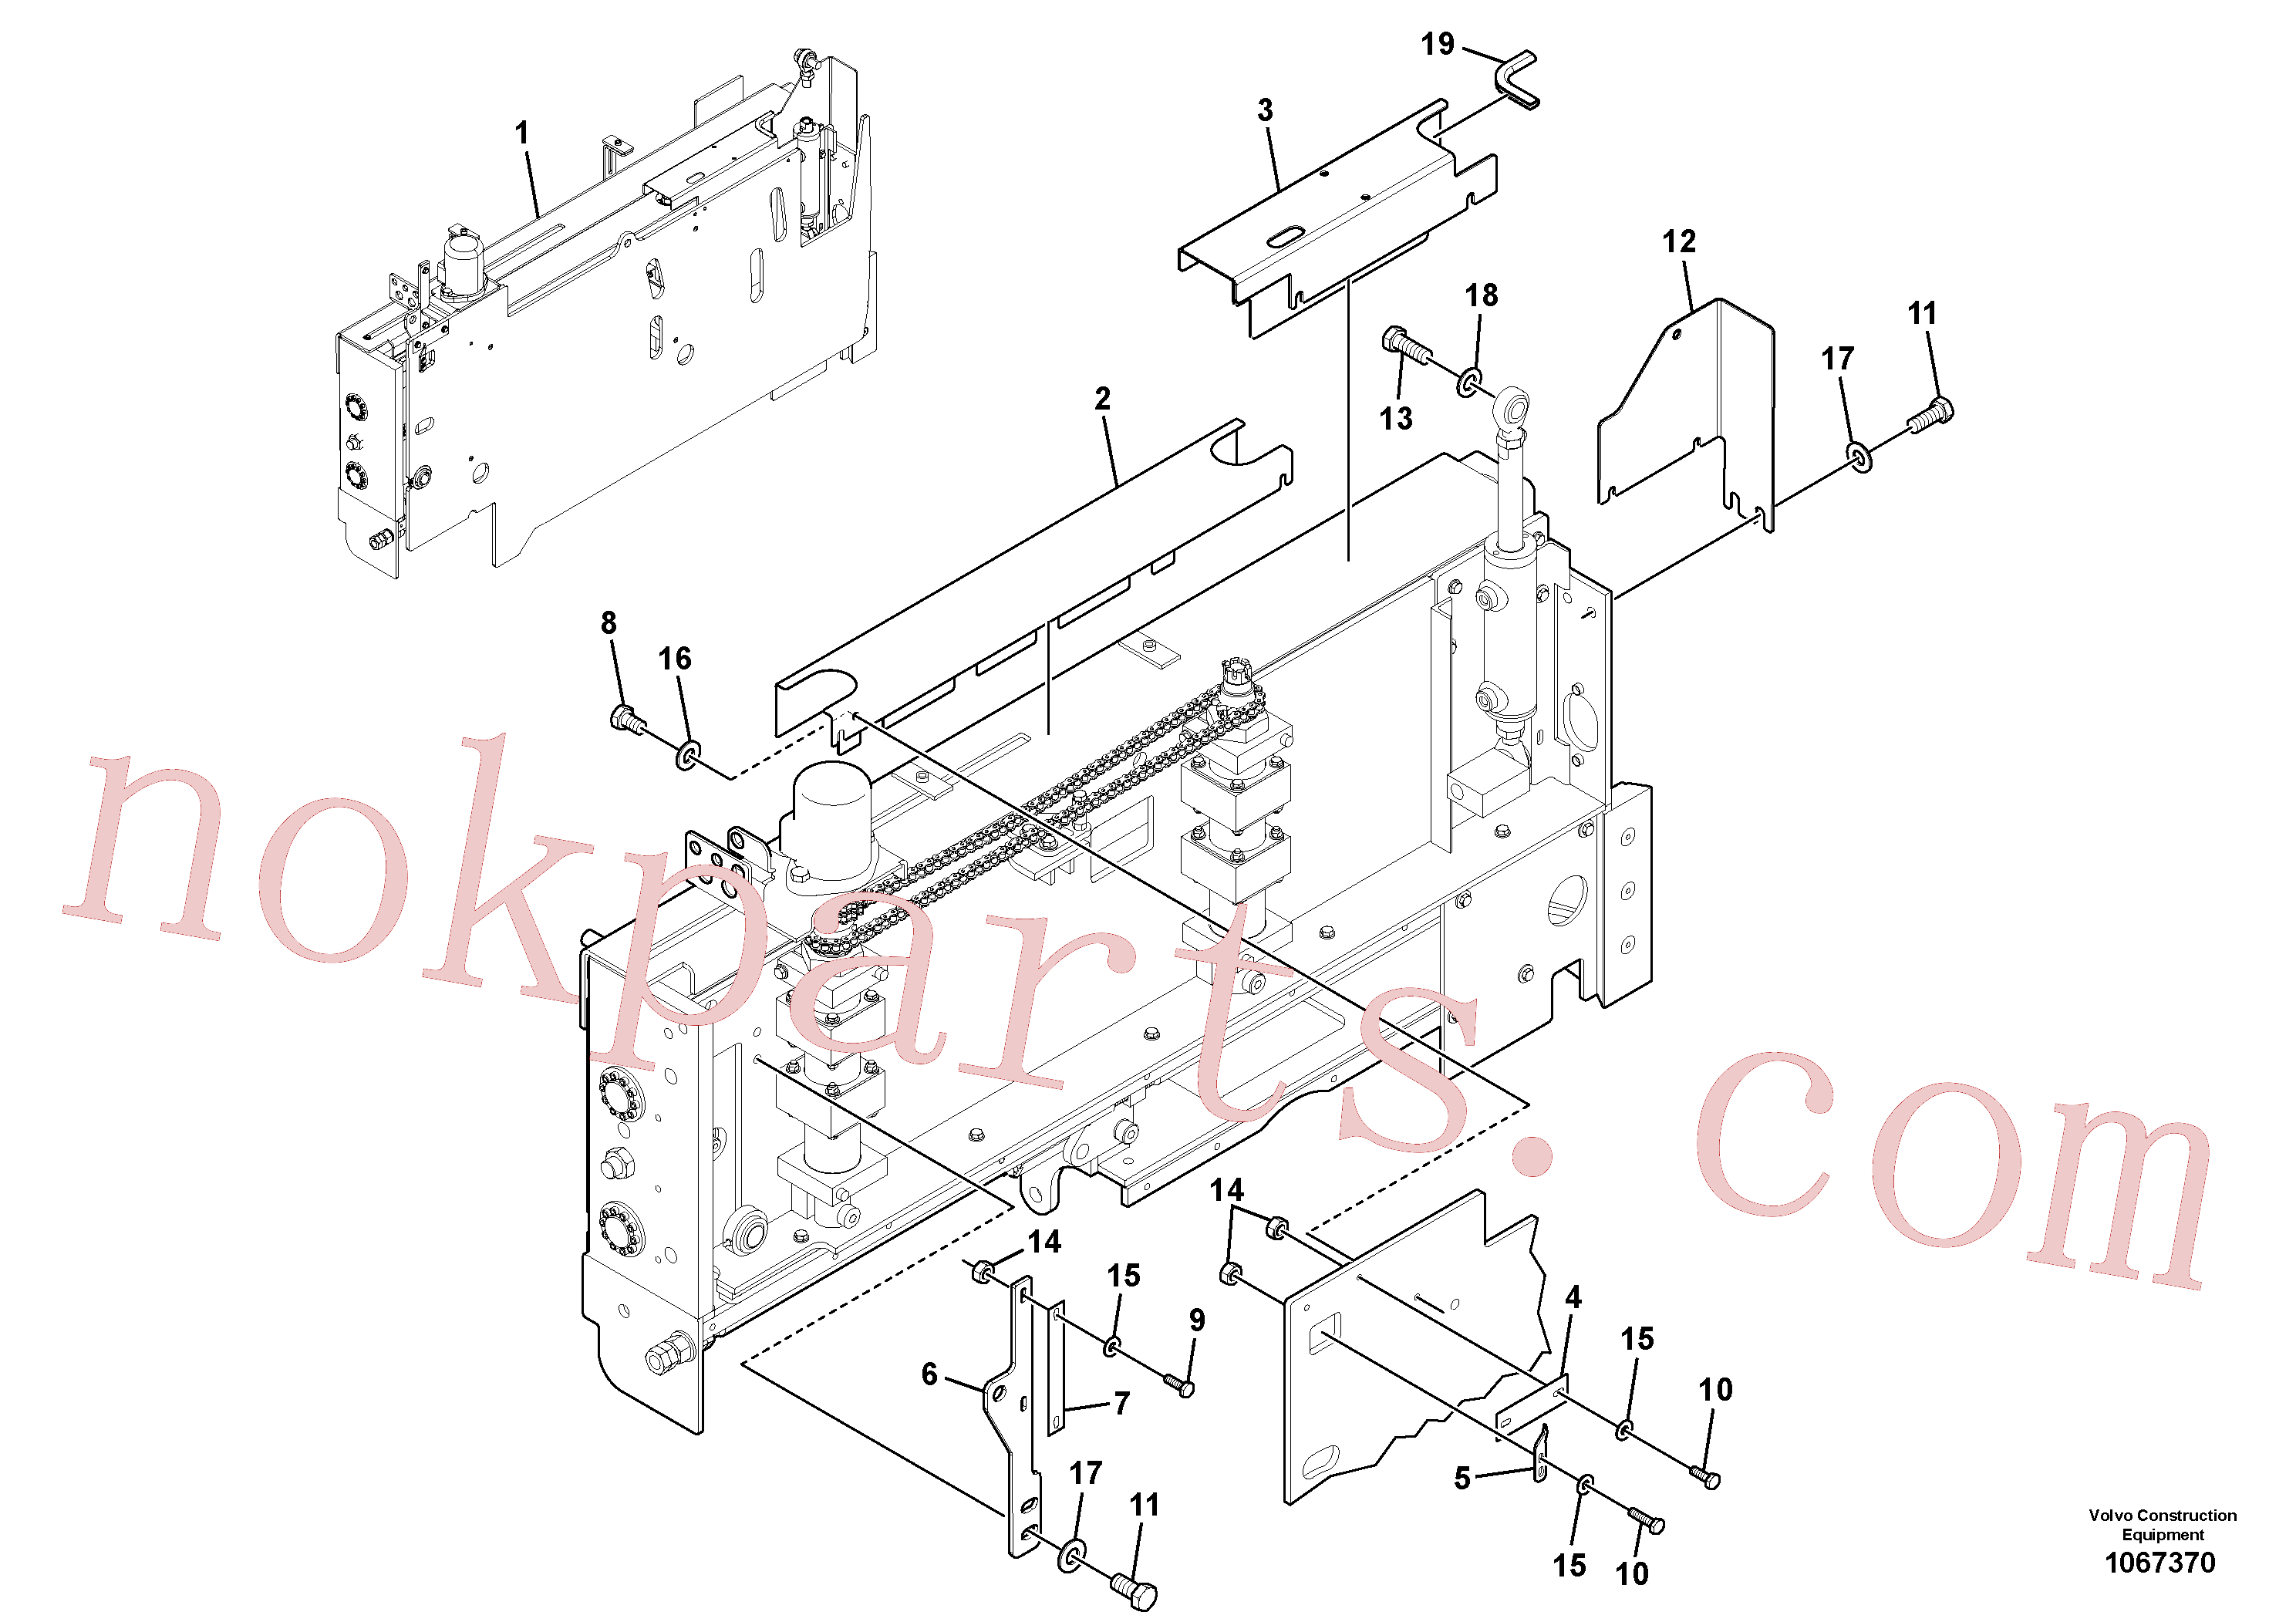 VOE50829654 for Volvo Extension Installation(1067370 assembly)